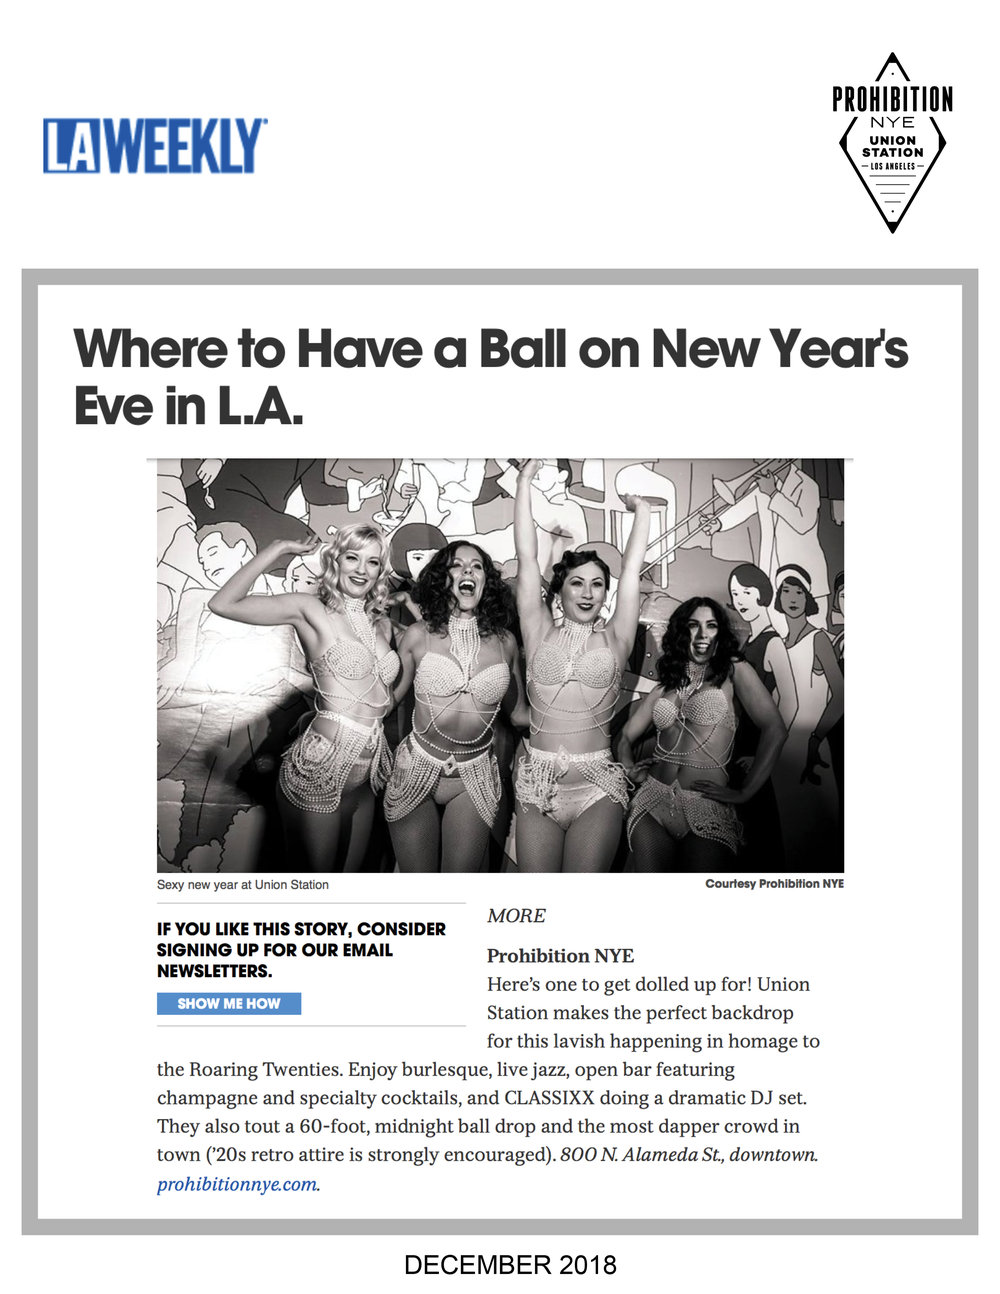 ProhibitionNYE_LAWeekly_December2018.jpg